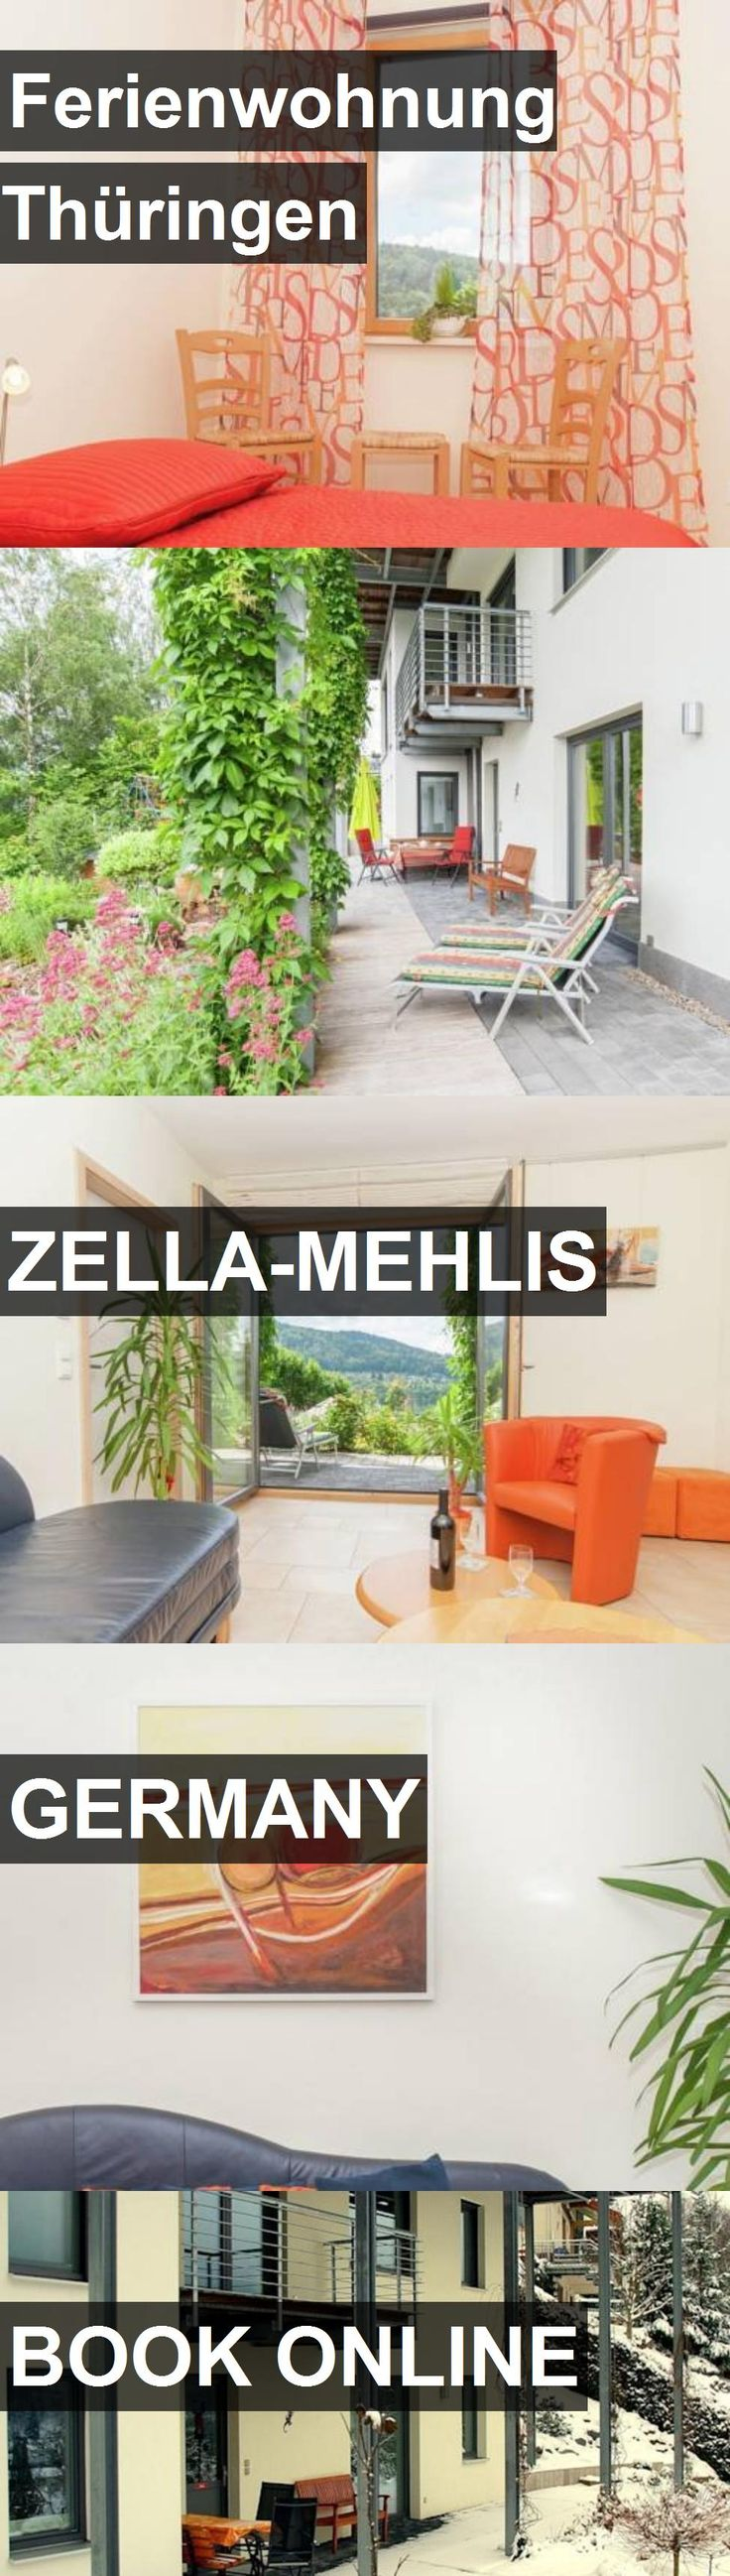 Hotel Ferienwohnung Thüringen in Zella-Mehlis, Germany. For more information, photos, reviews and best prices please follow the link. #Germany #Zella-Mehlis #FerienwohnungThüringen #hotel #travel #vacation